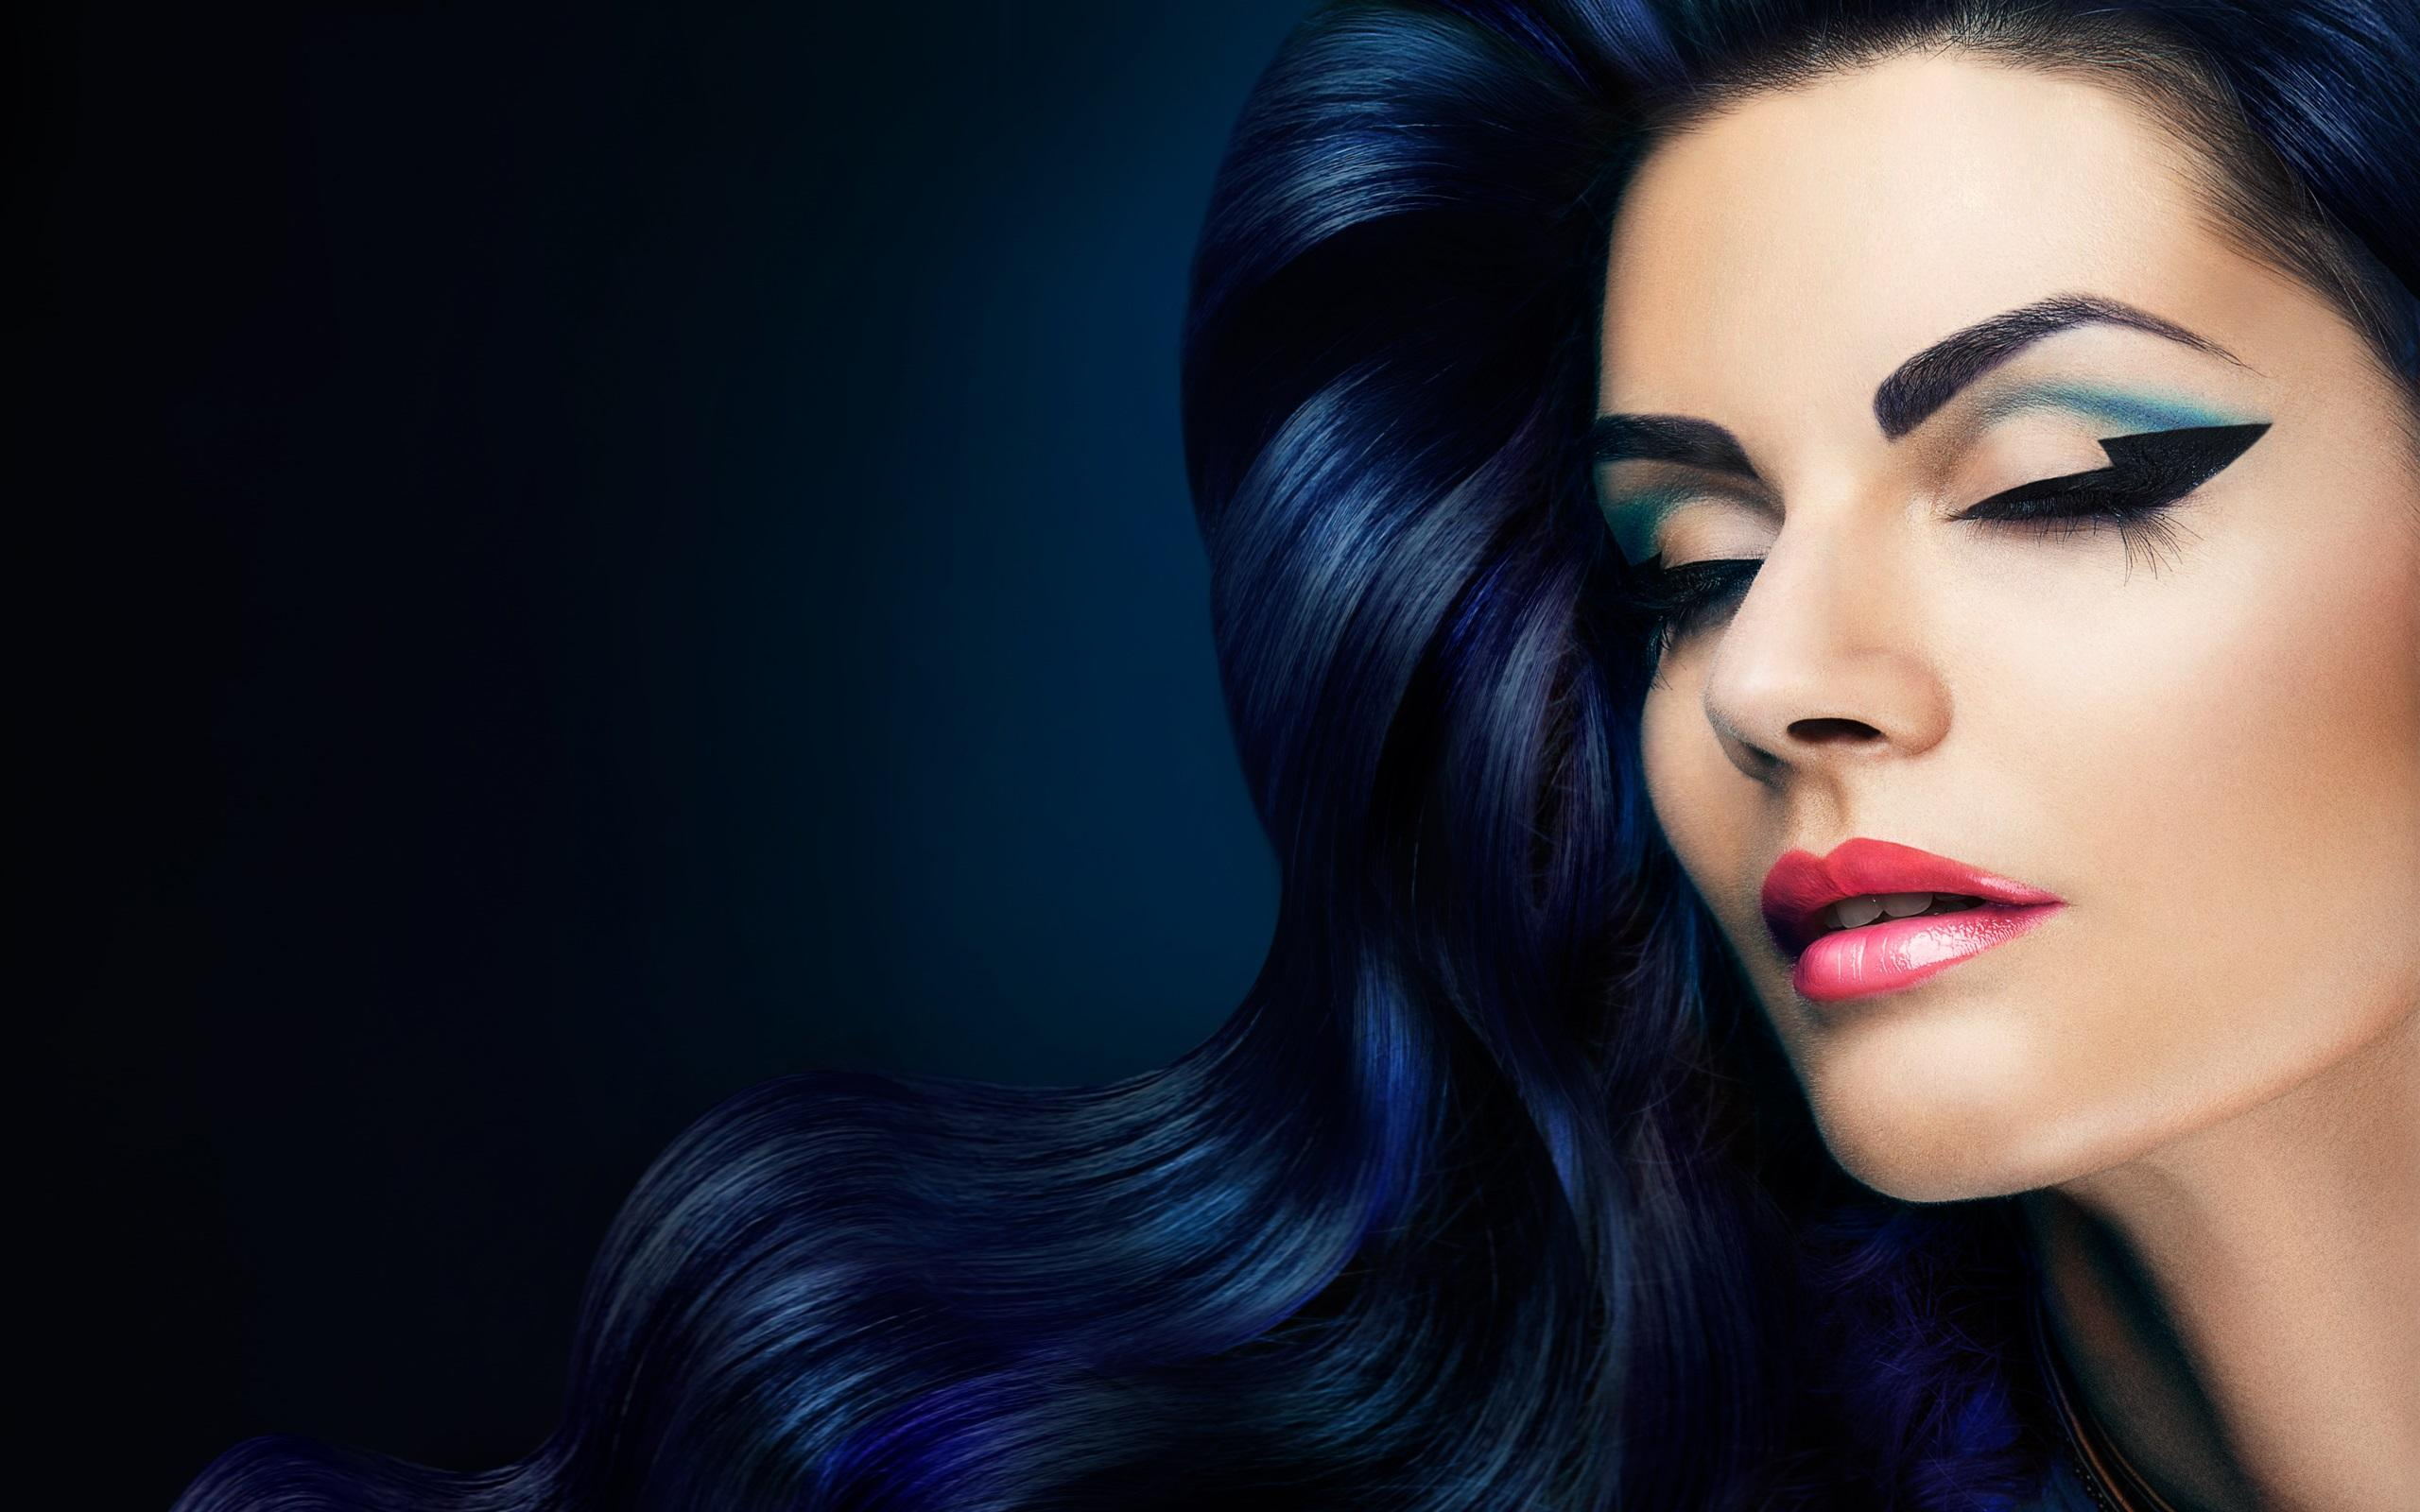 Hair Style Wallpapers Wallpaper Cave